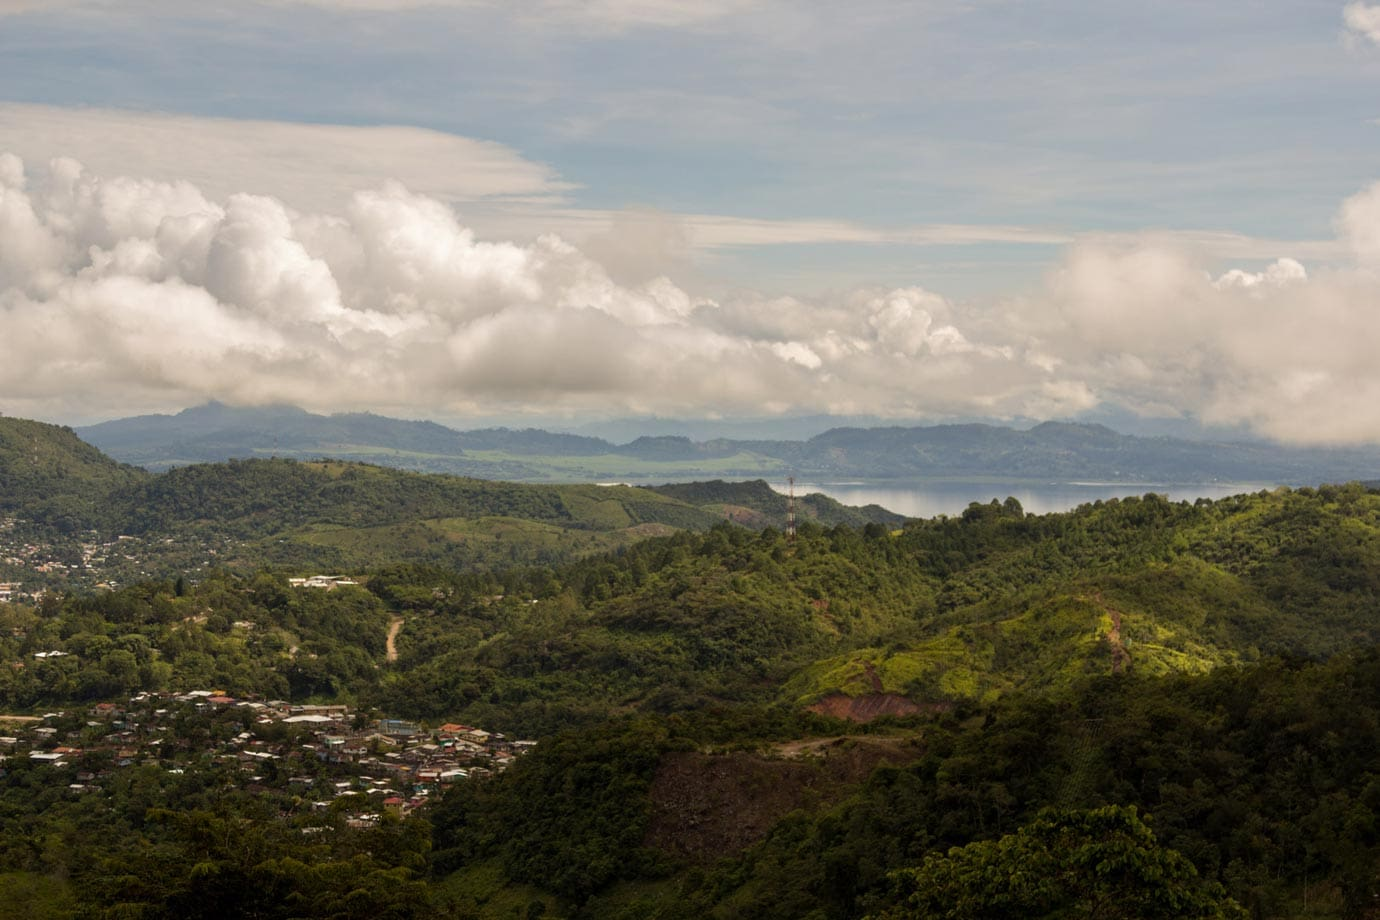 Honduras is great for hiking, and as the name suggests, the Three Waterfalls hike takes in some of the spectacular scenery seen in the surrounding area